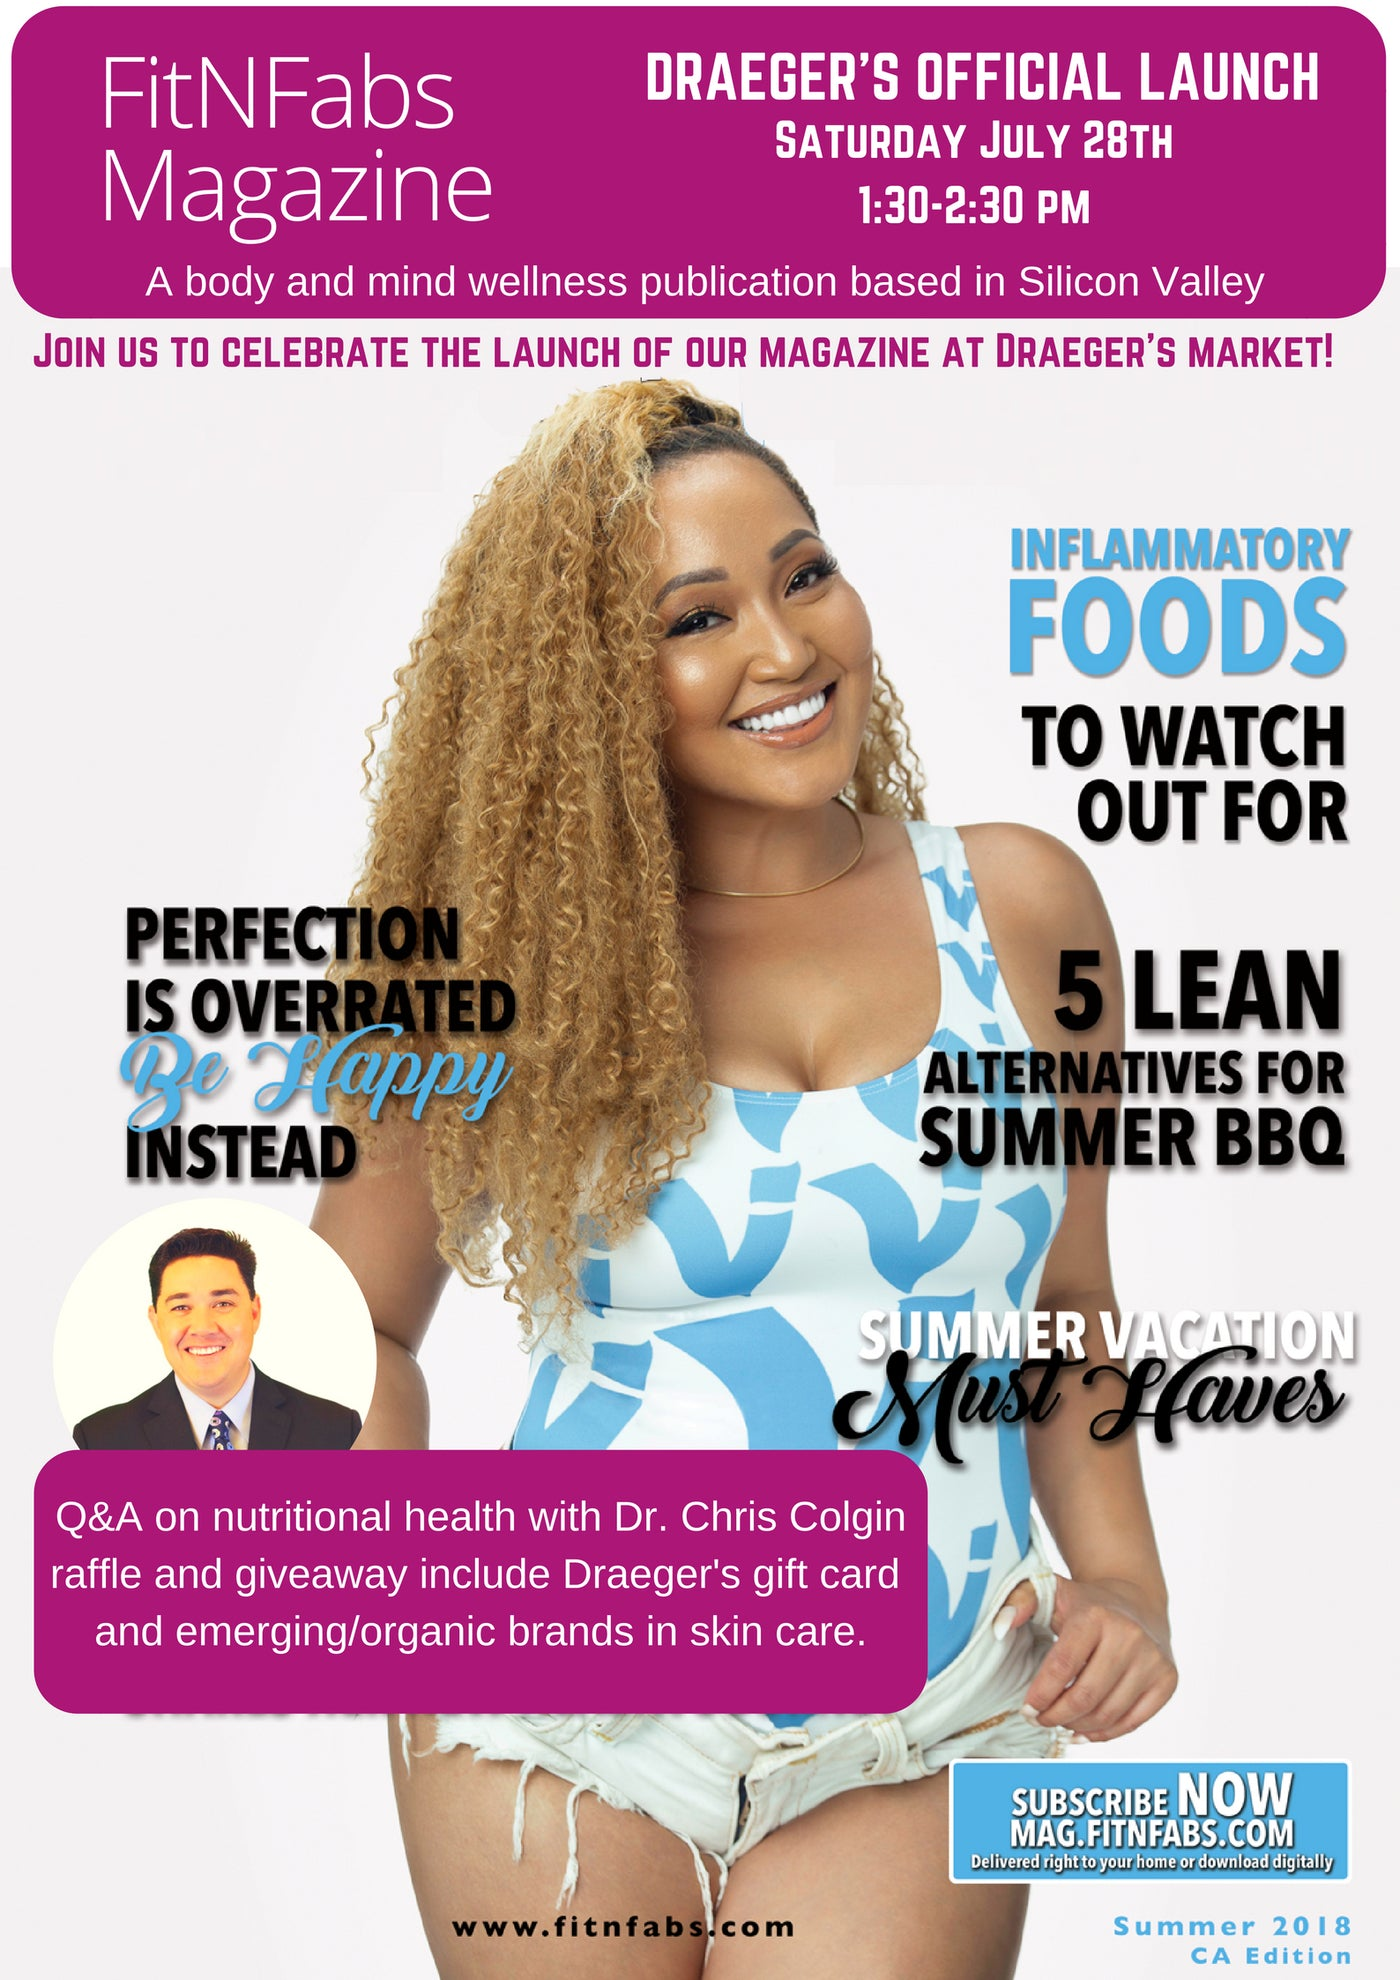 FitNFabs Magazine & Draeger's Official Launch